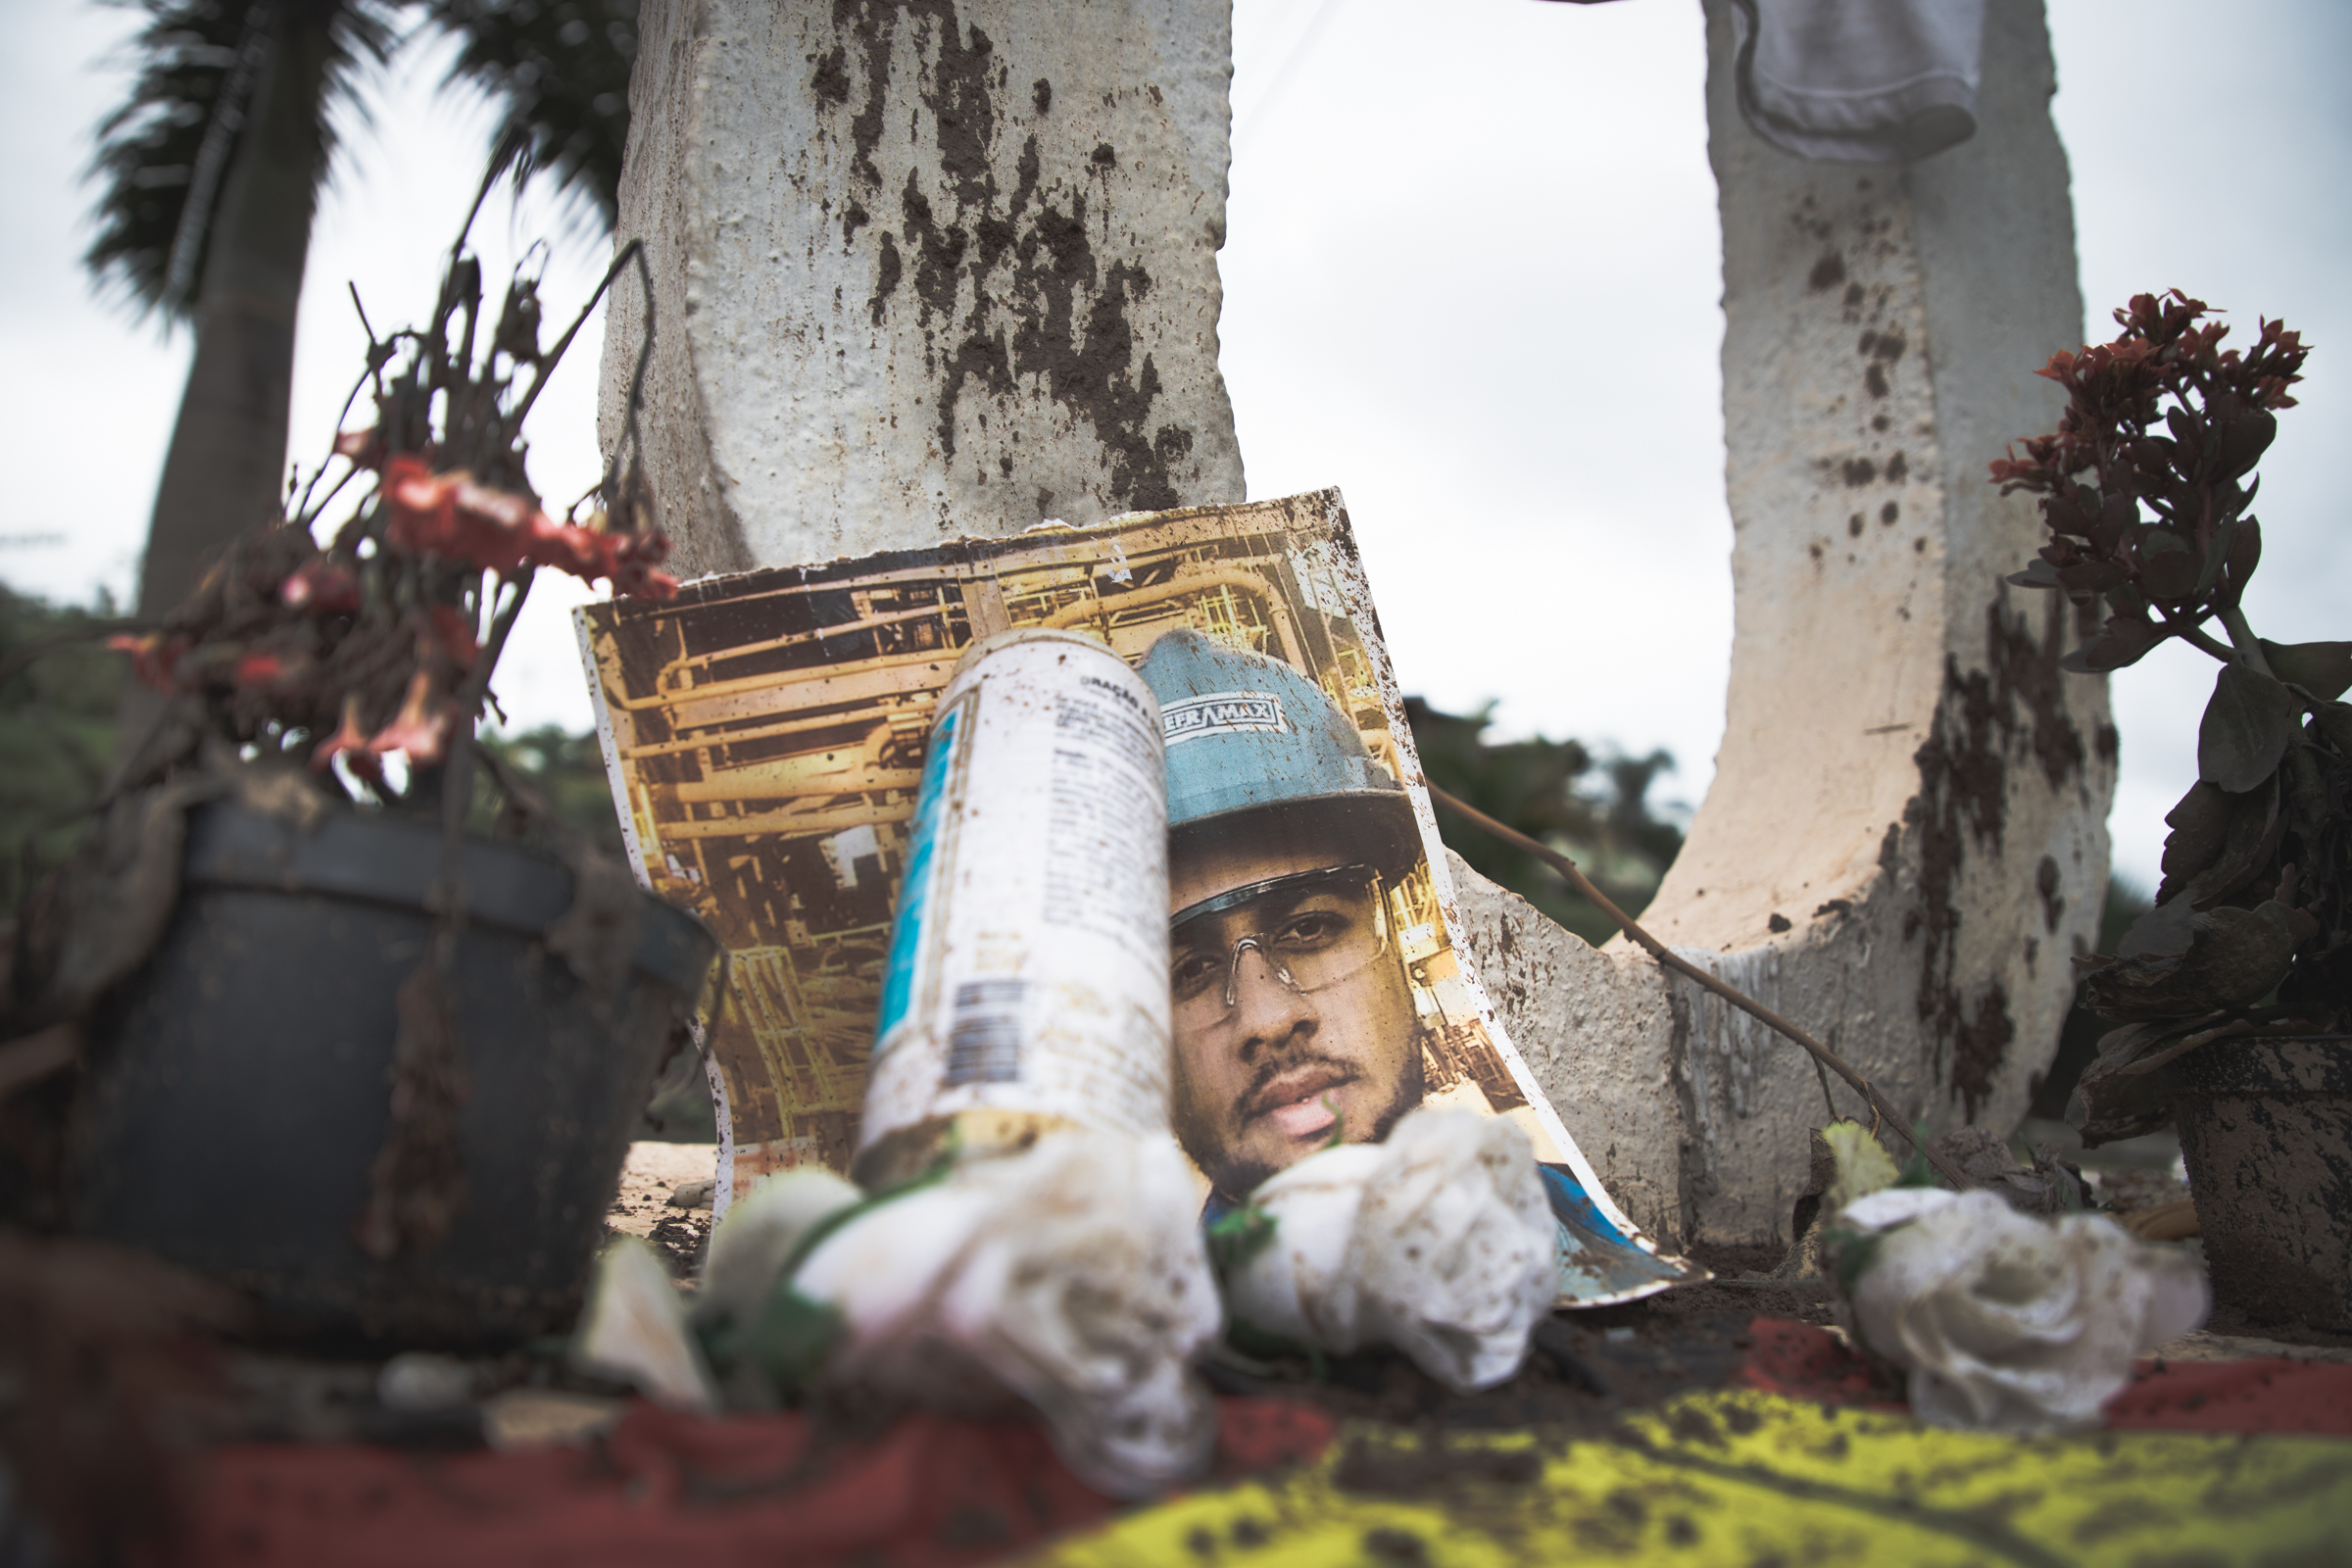 """The photograph of a worker killed in the Vale dam collapse of 2019 lies at the base of the of Brumadinho City sign in Minas Gerais. Alongside the photo, a hand-written sign states: """"Vale: lucro acima de tudo e lama acima de todos"""" (Vale: profit above everything and mud above all)."""